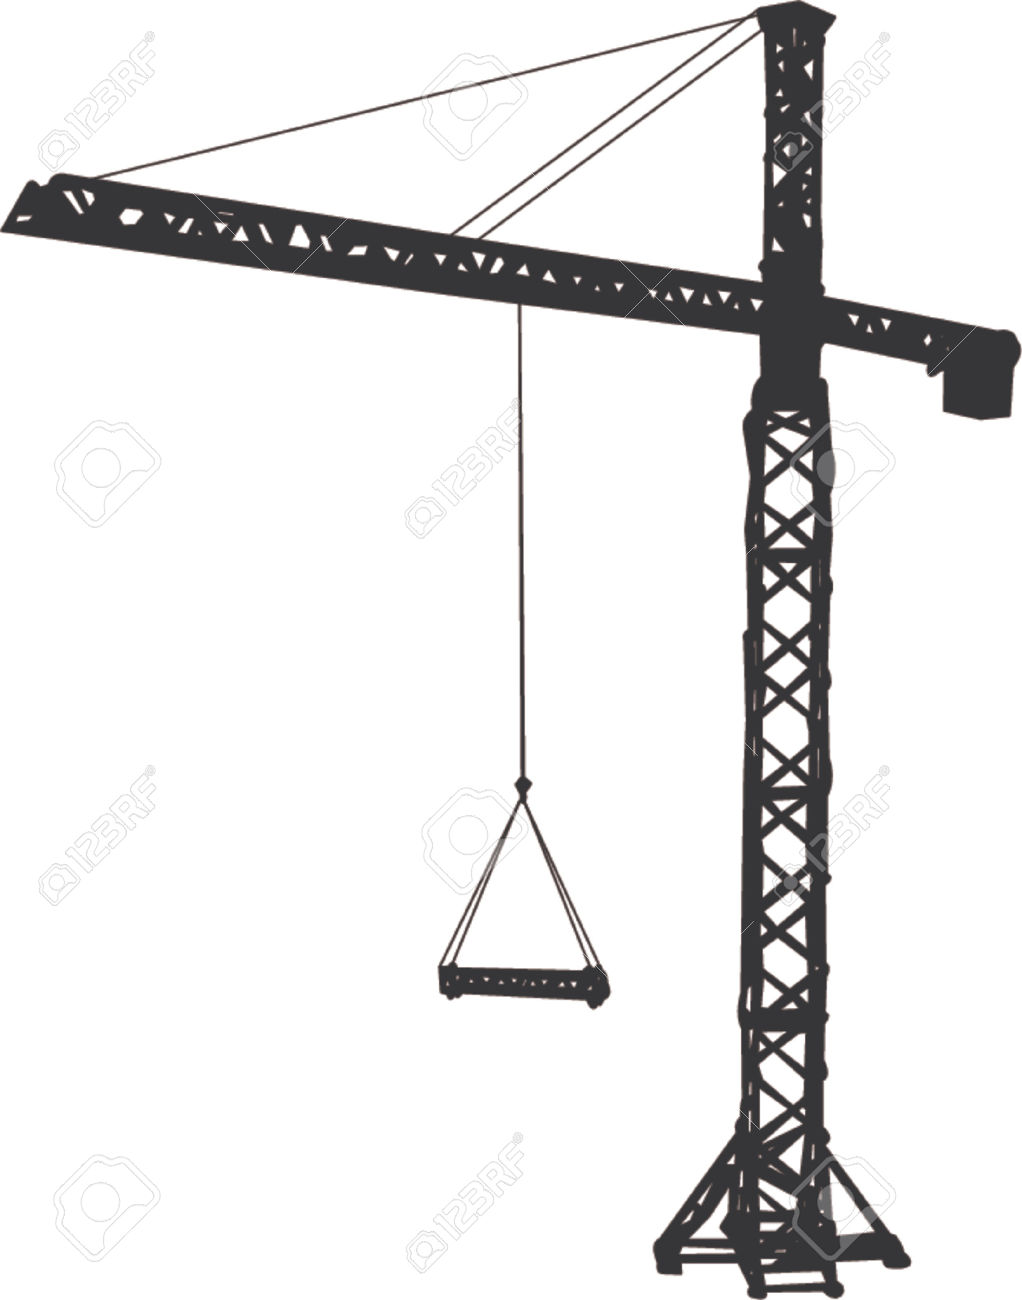 Tower crane overhead clipart clip freeuse download Crane clipart - ClipartBarn clip freeuse download